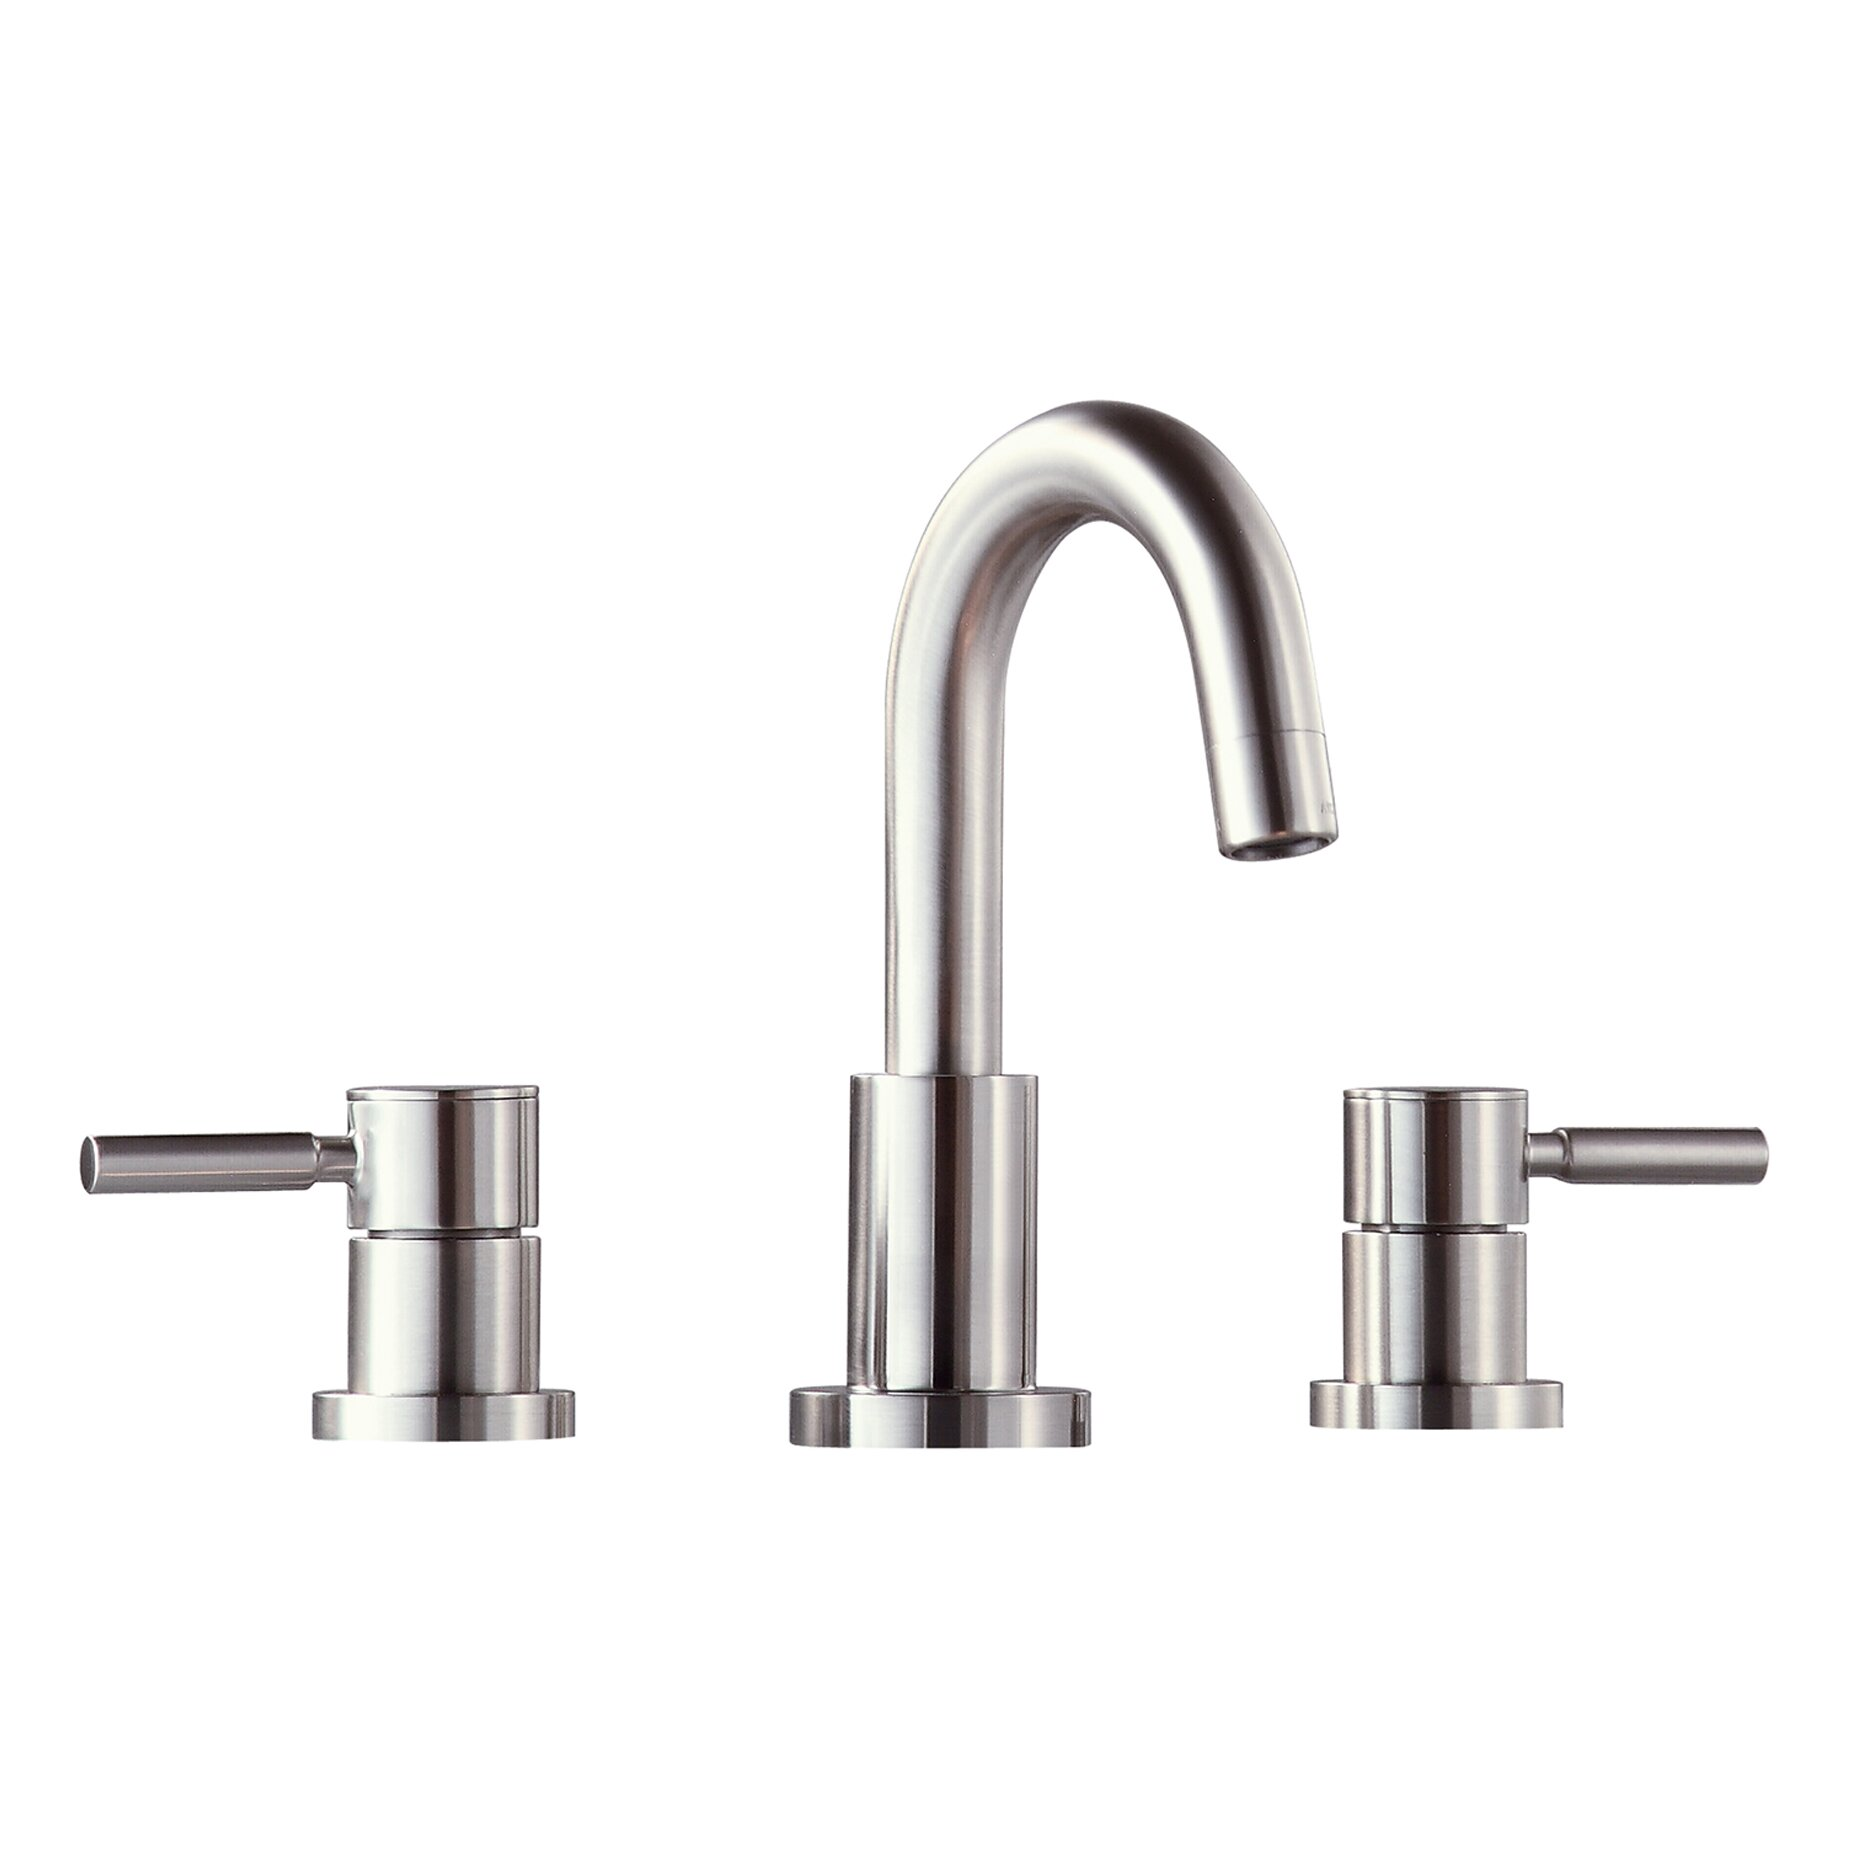 Two Faucets To One Sink Double Spouted Faucet Under Sink Kit Useful Reviews Of Home Design